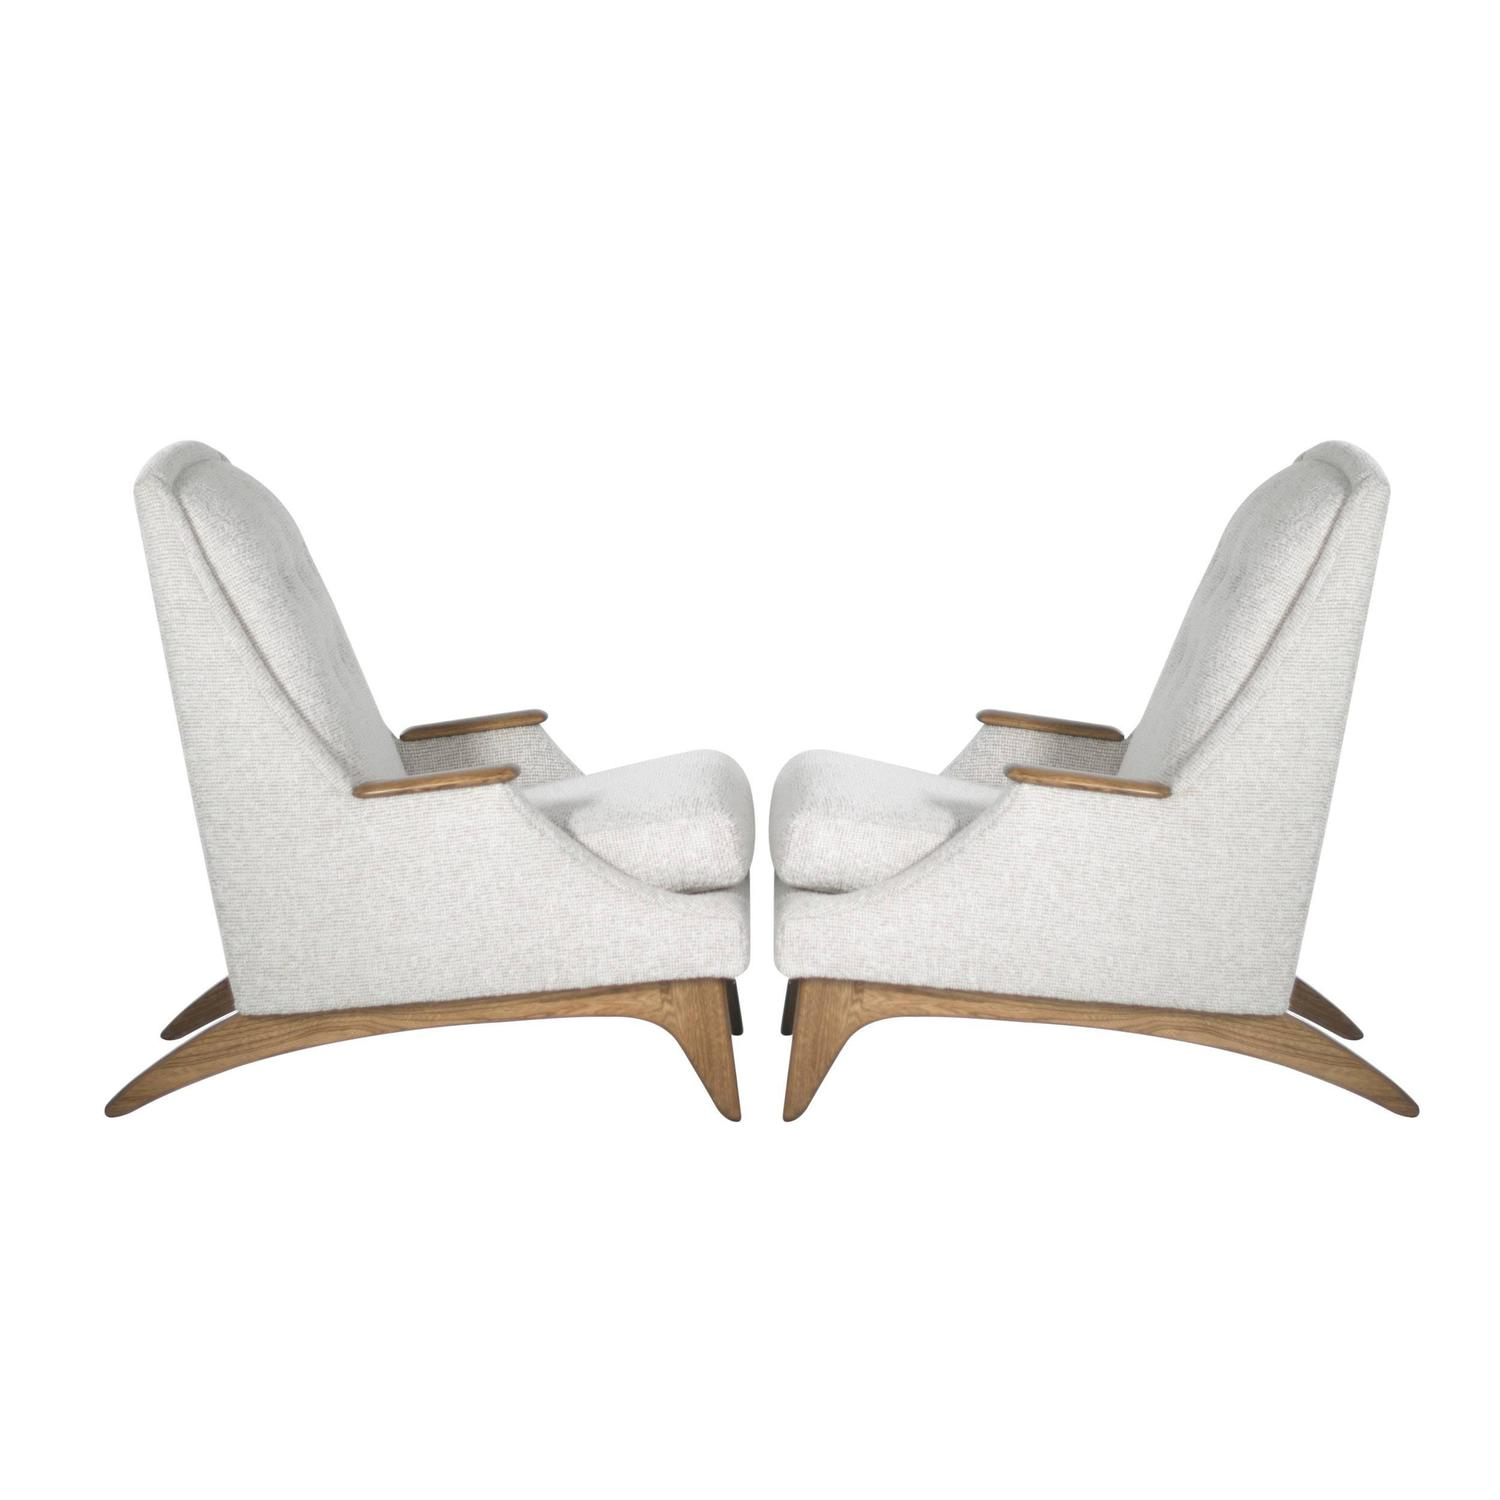 Sculptural Highback Lounge Chairs By Adrian Pearsall For Sale At 1stdibs